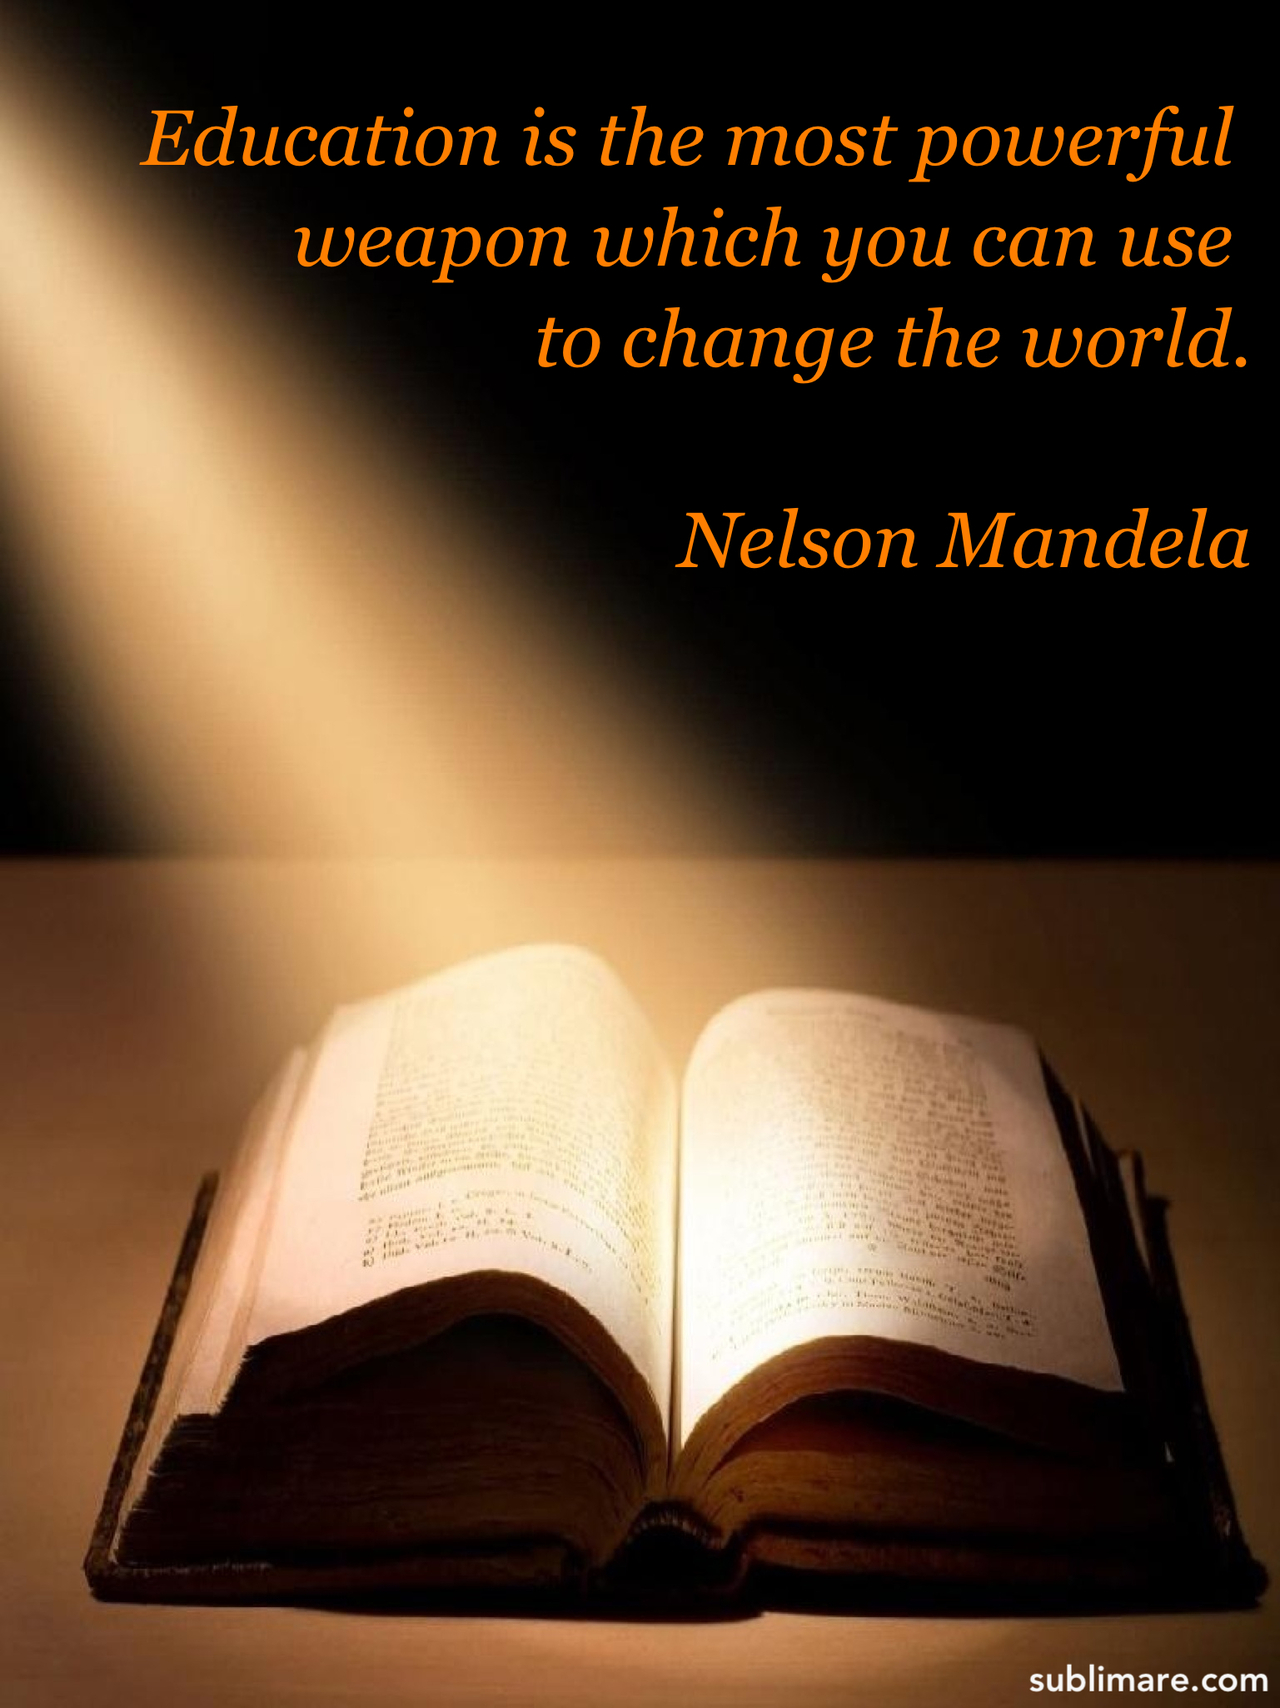 Education by Mandela